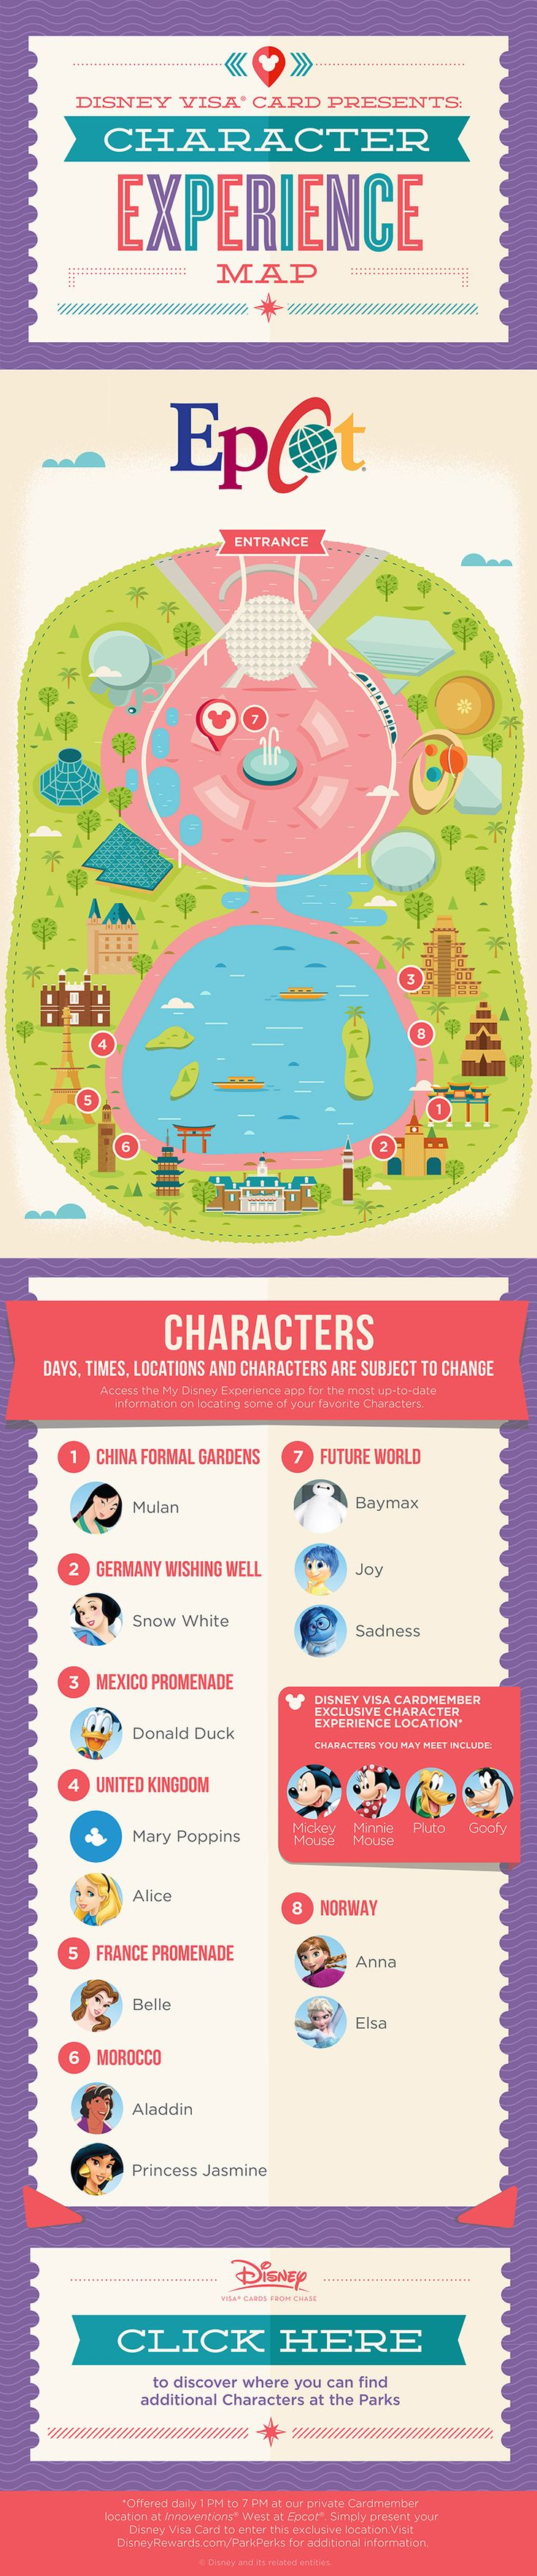 If you're heading to Epcot® and wondering what Characters you can meet, wonder no more: this guide will tell you who you can meet and where you can meet them! Don't forget to check the My Disney Experience app before you head out for up-to-date information!